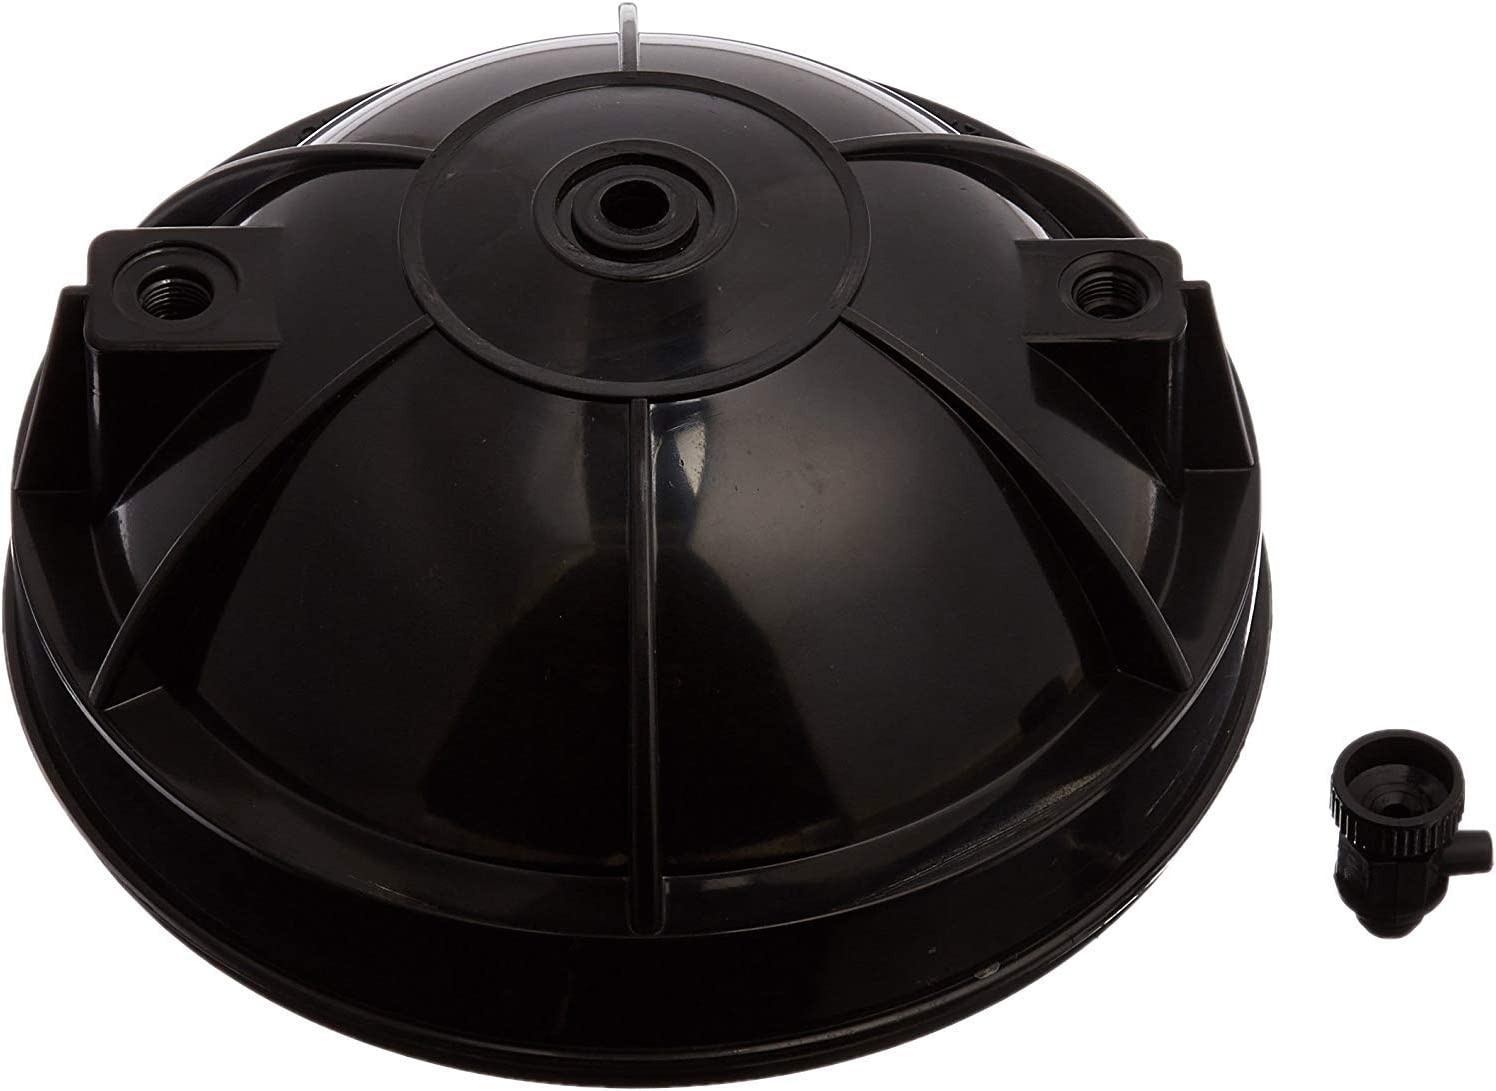 Val-Pak Products V38-150 Max 57% OFF Direct store Commander Air with Relief Lid